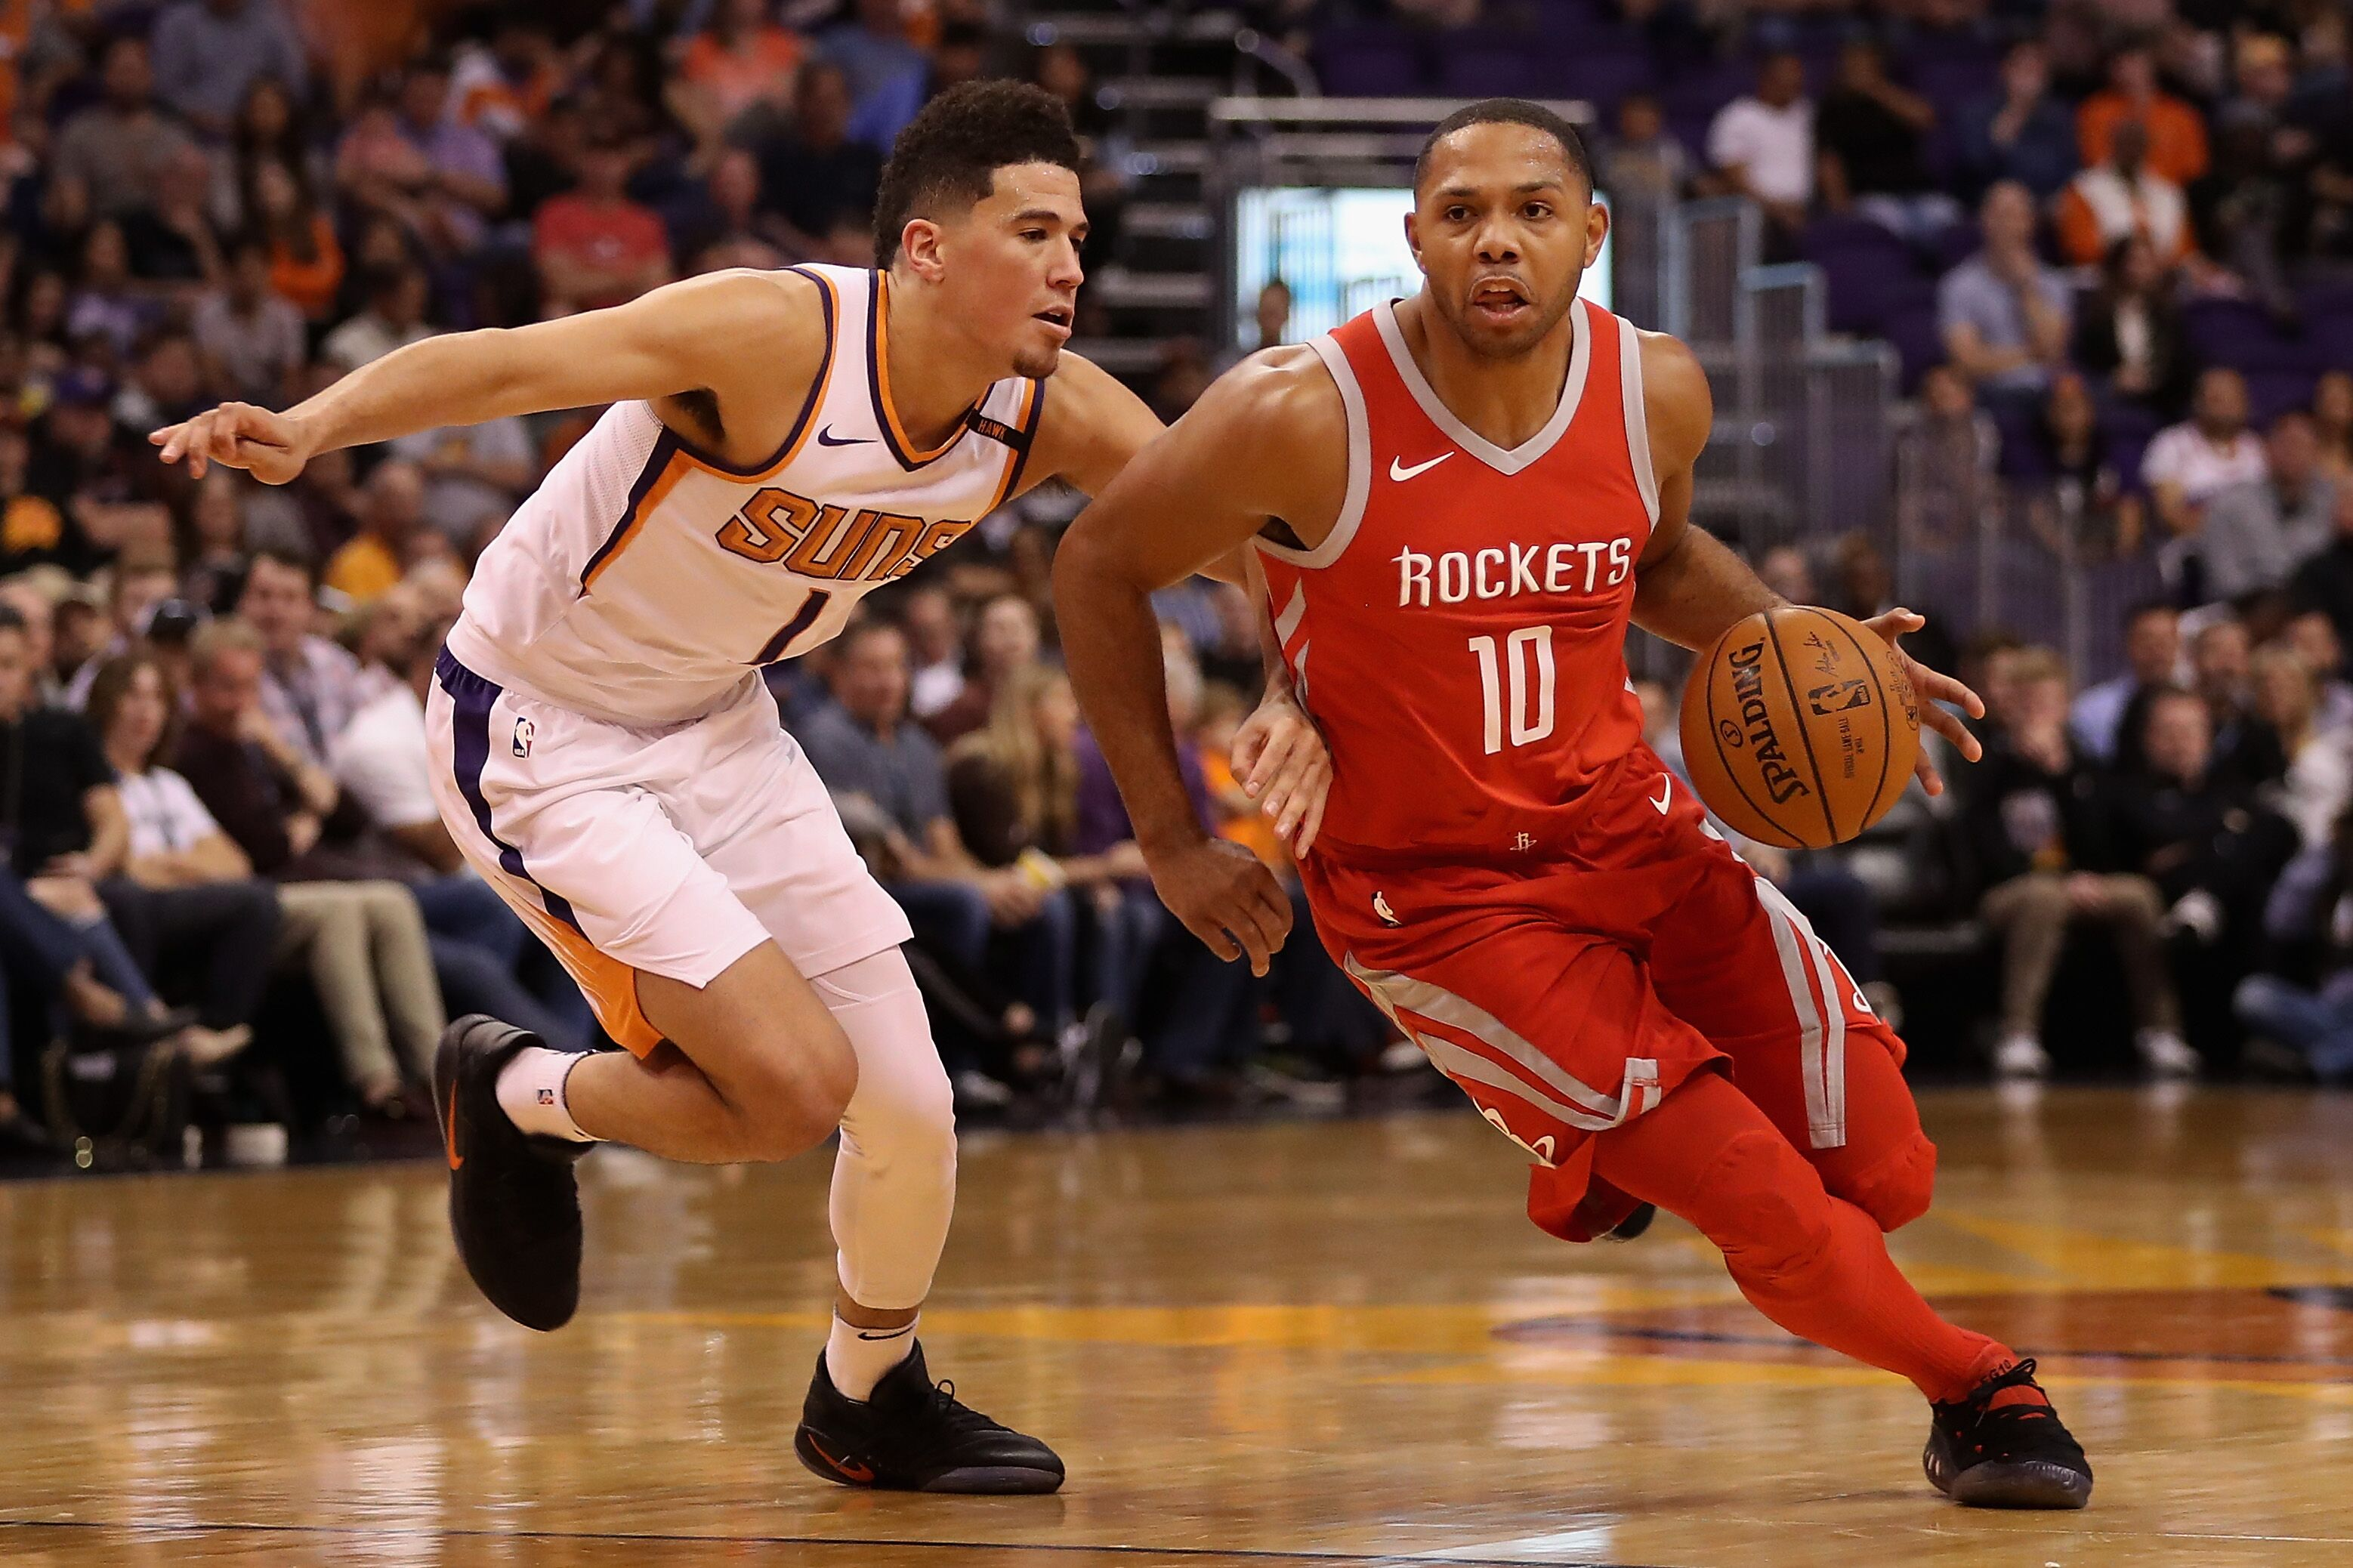 875538546-houston-rockets-v-phoenix-suns.jpg